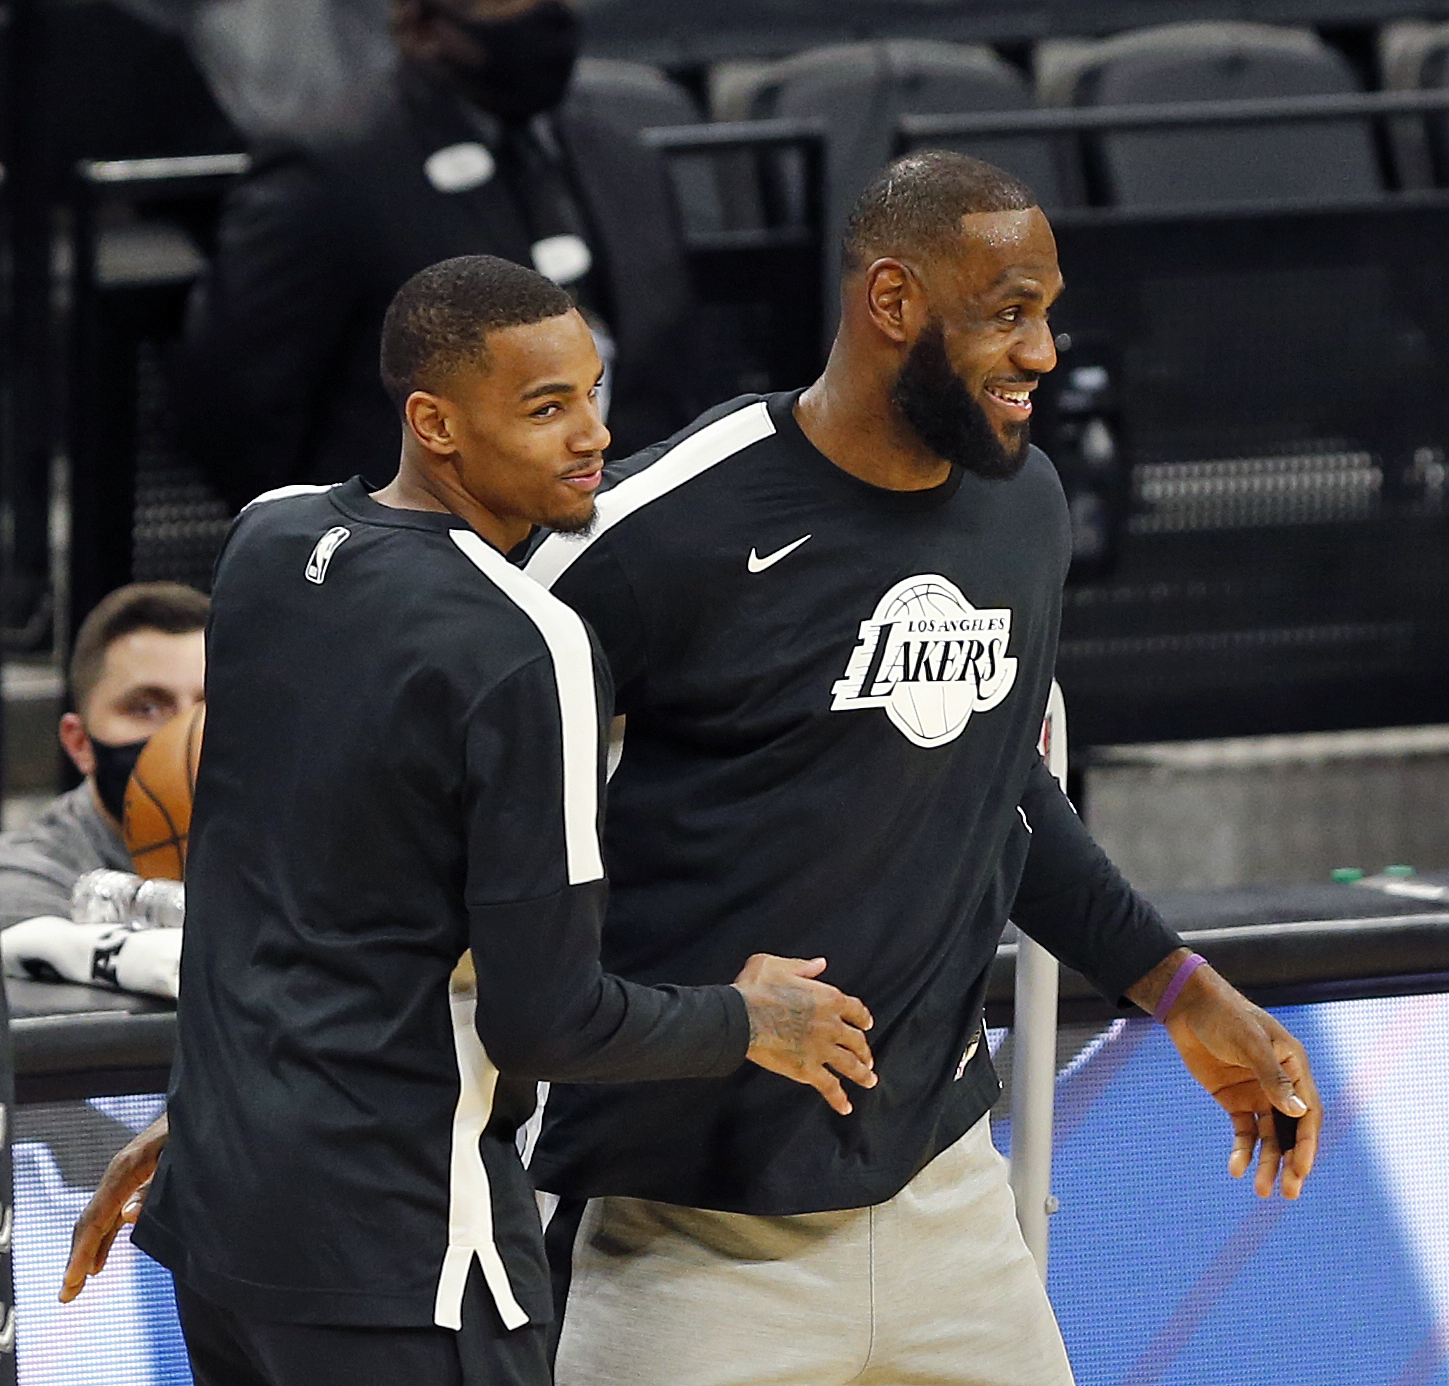 Dejounte Murray of the Spurs greets LeBron James of the Los Angeles Lakers